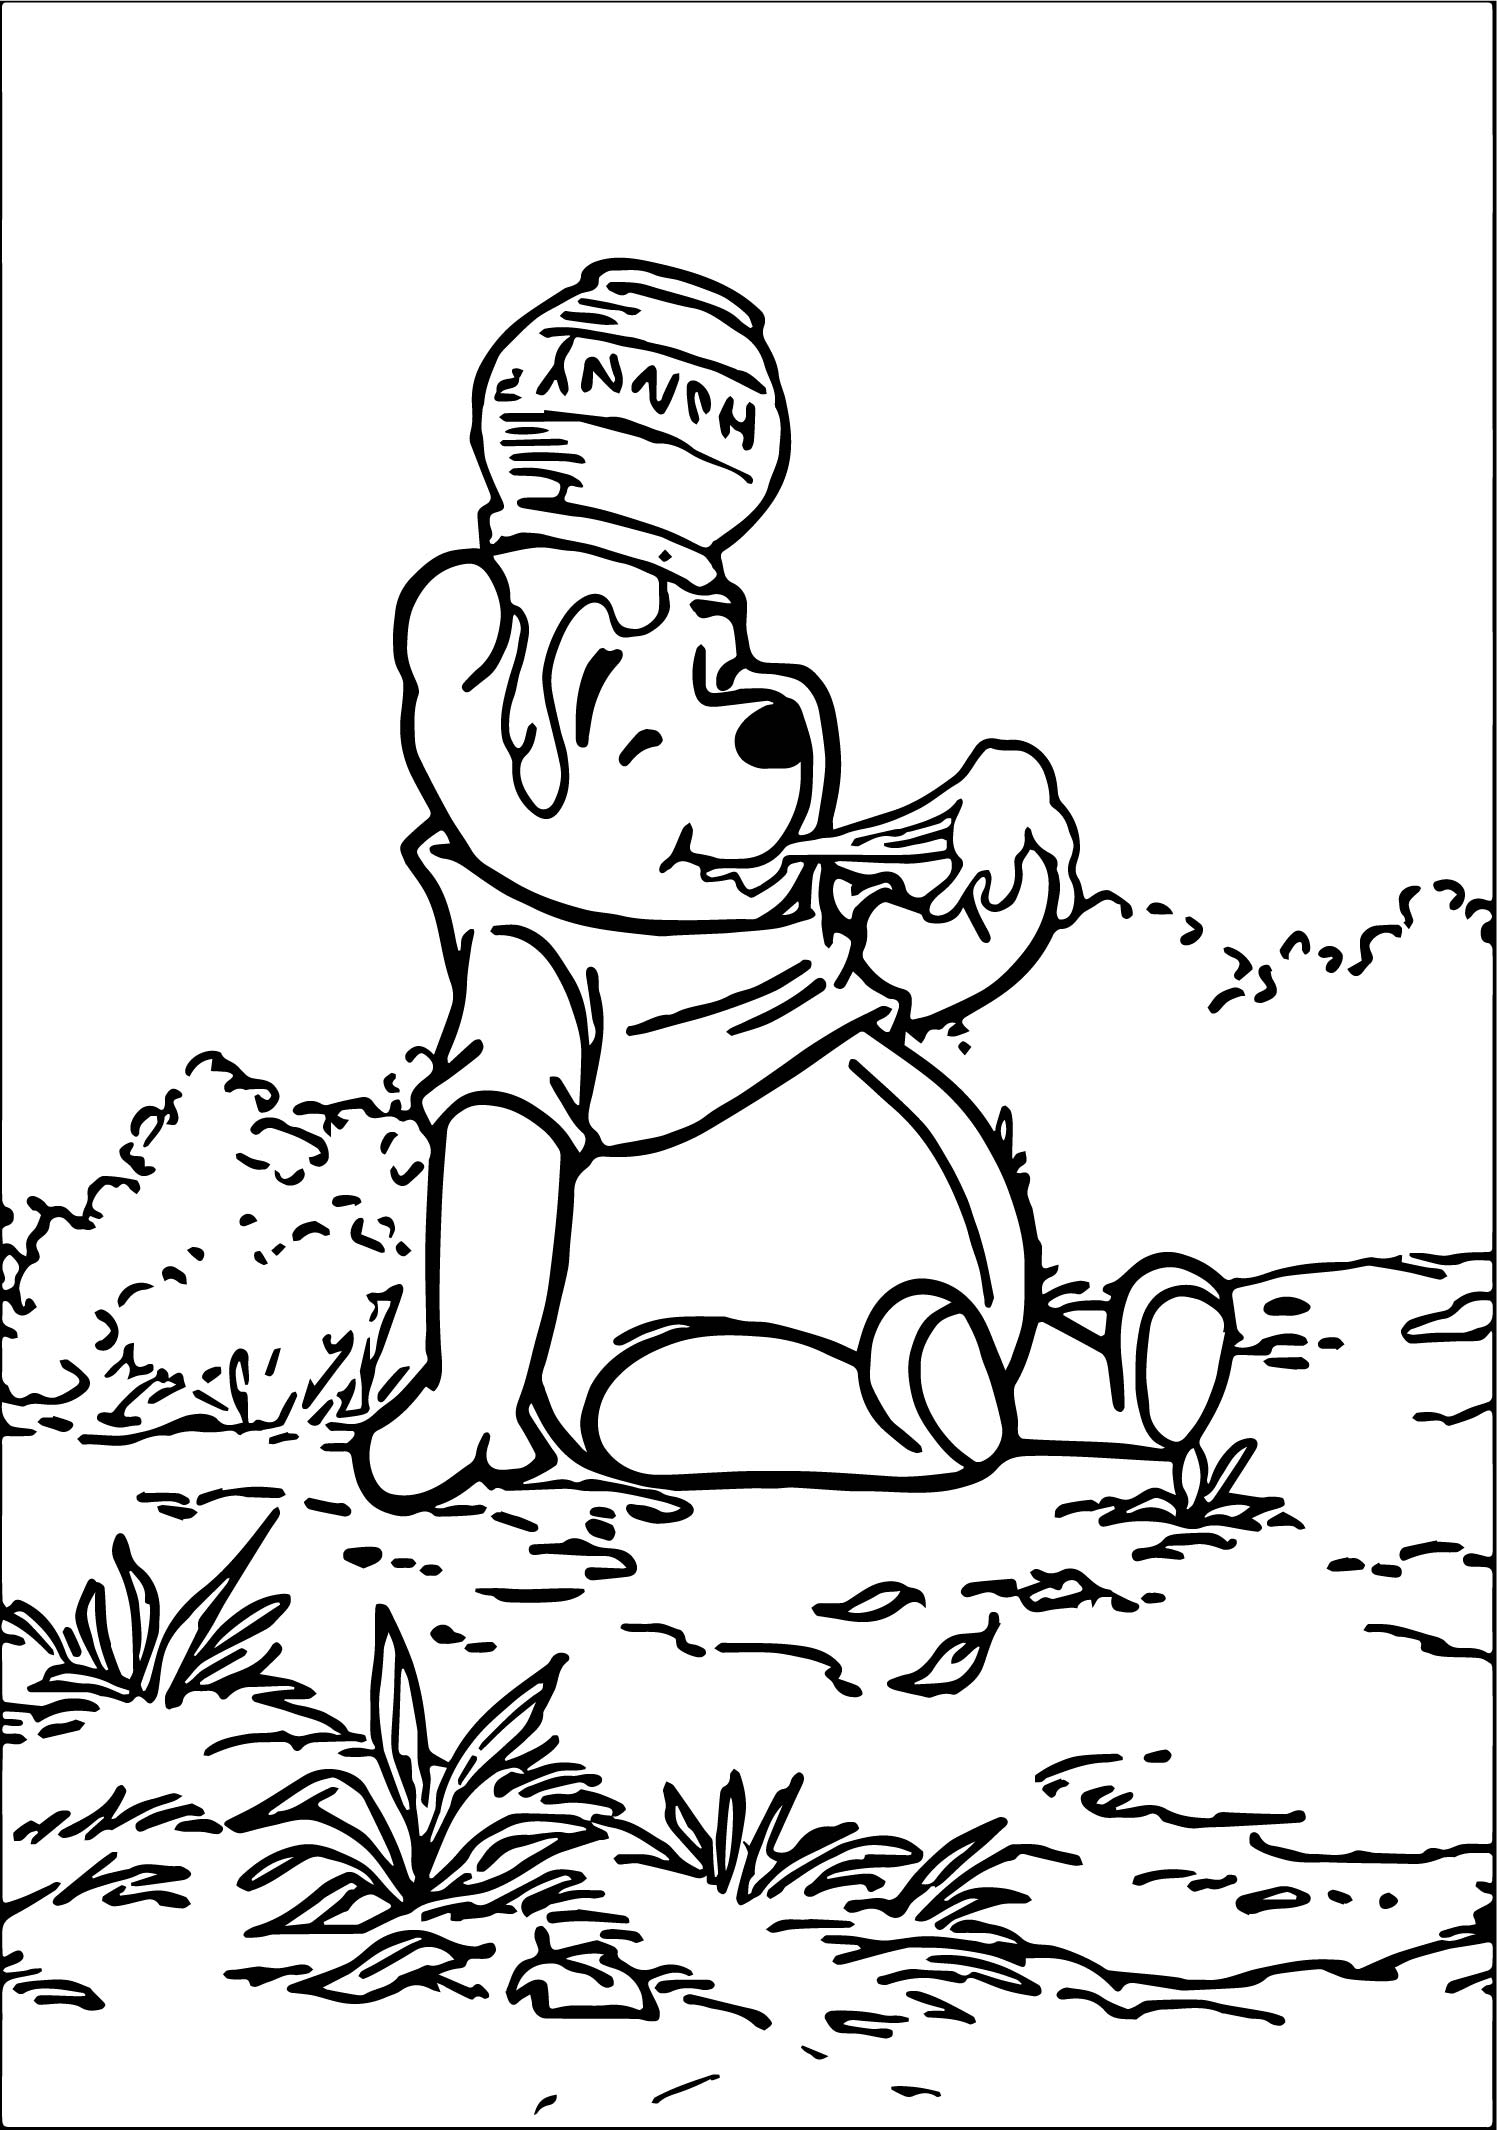 Winnie The Pooh Eat Hunny Coloring Page